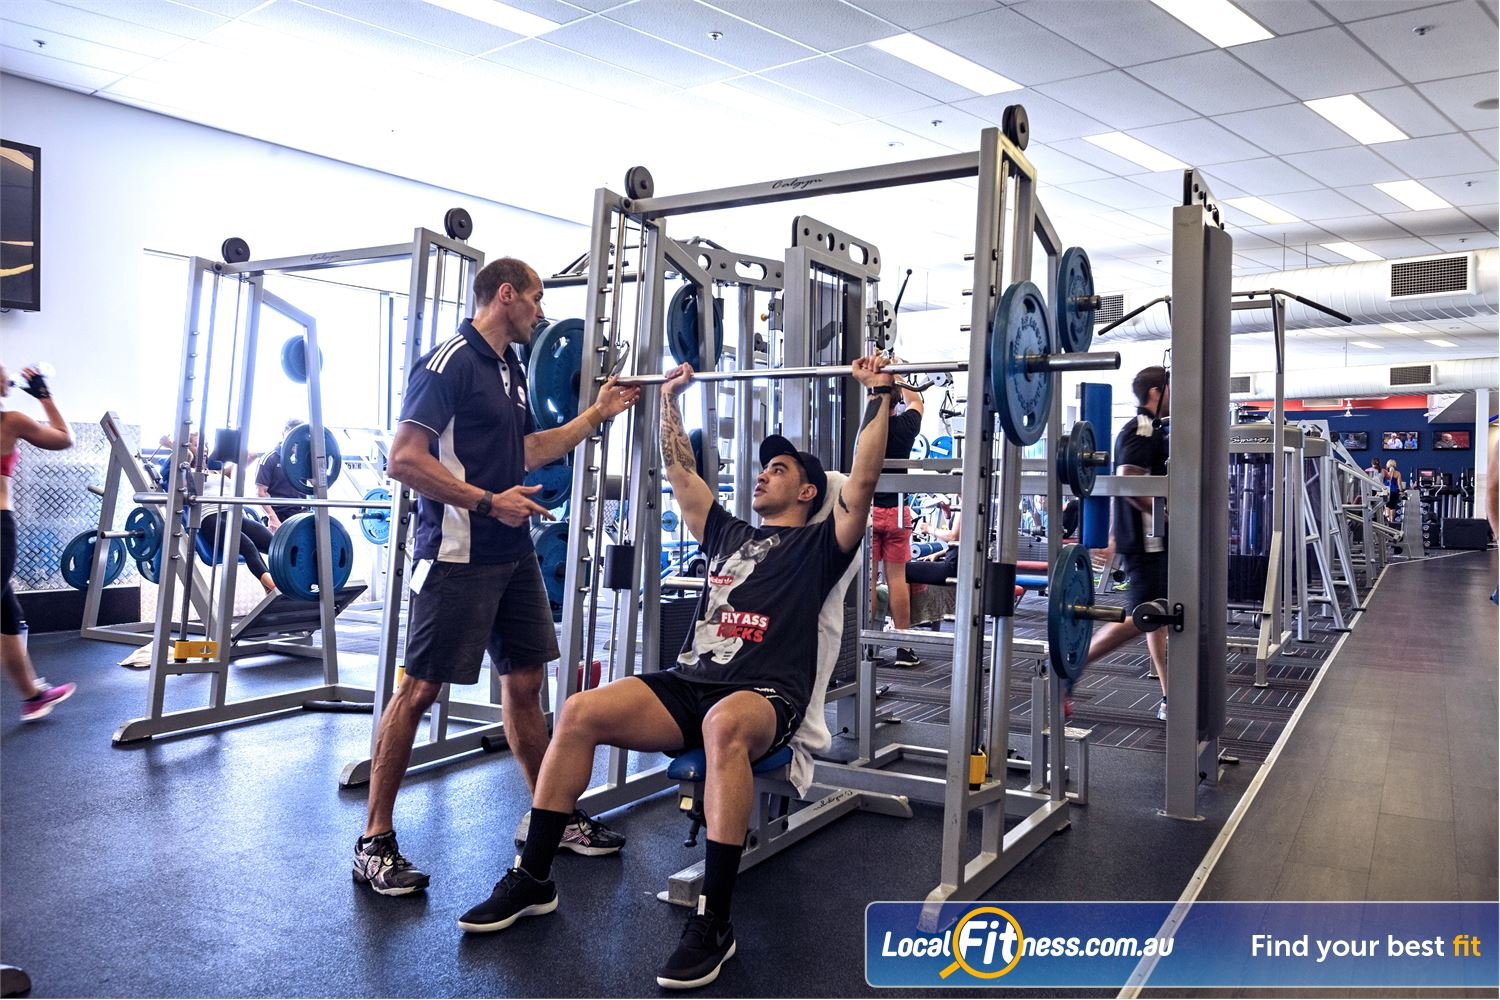 Goodlife Health Clubs Helensvale Goodlife Helensvale personal training is just that...personal.